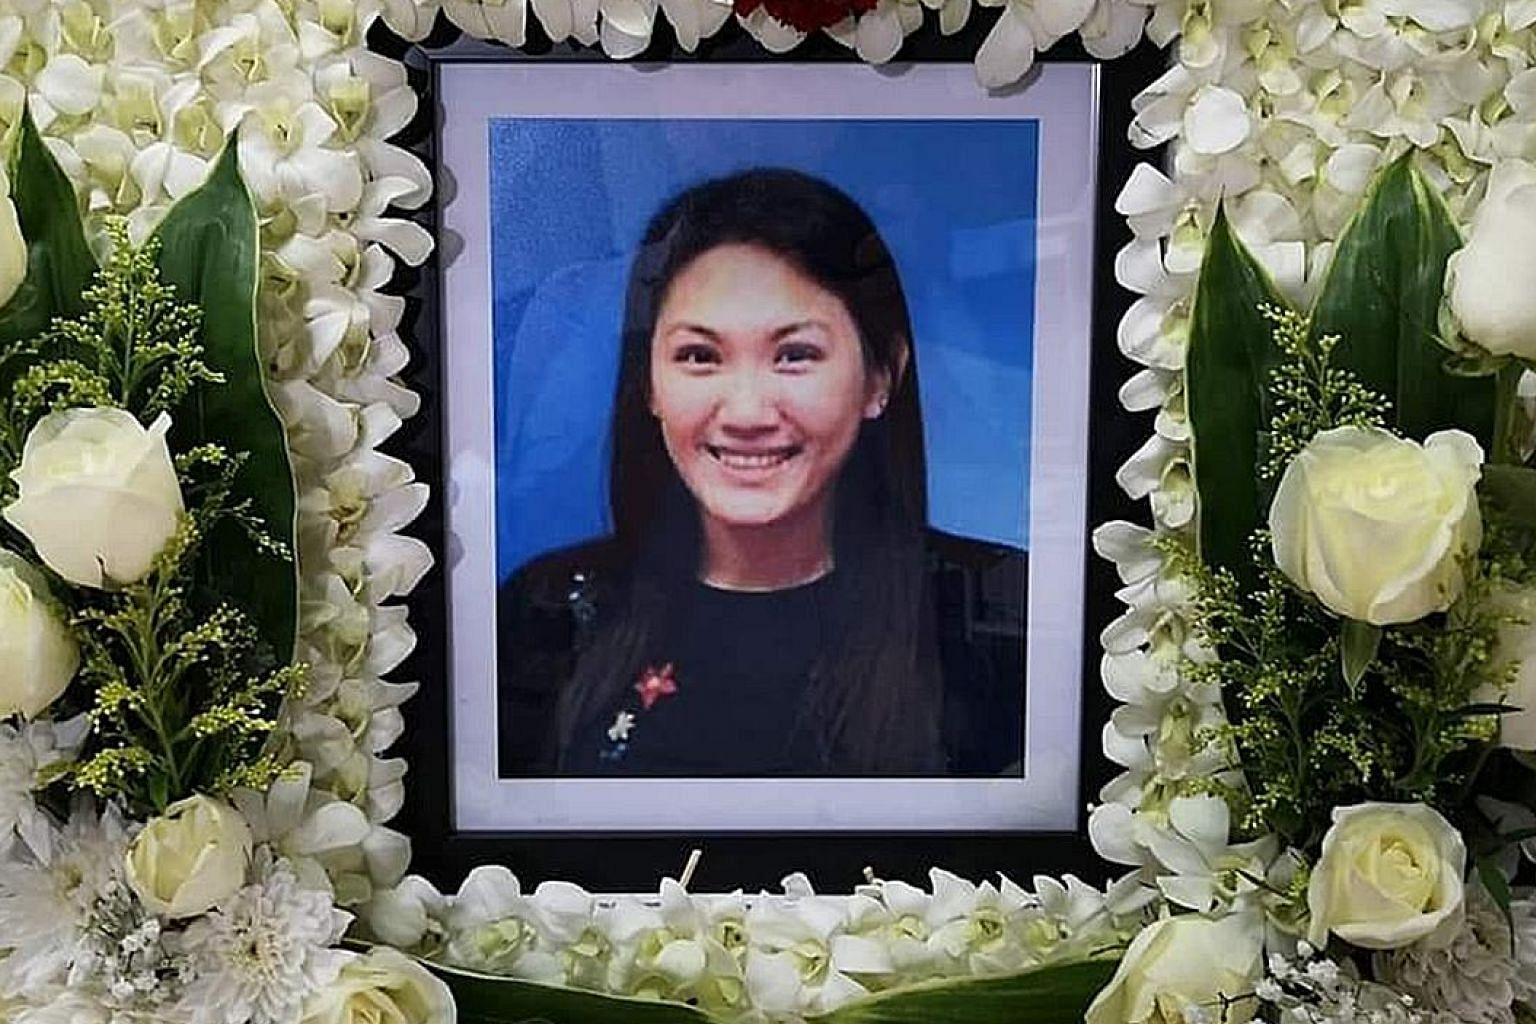 Malaysian production operator Mok Fei Chen died of multiple injuries at the scene when she and another woman were flung out of the bus when it crashed at Tuas Checkpoint.